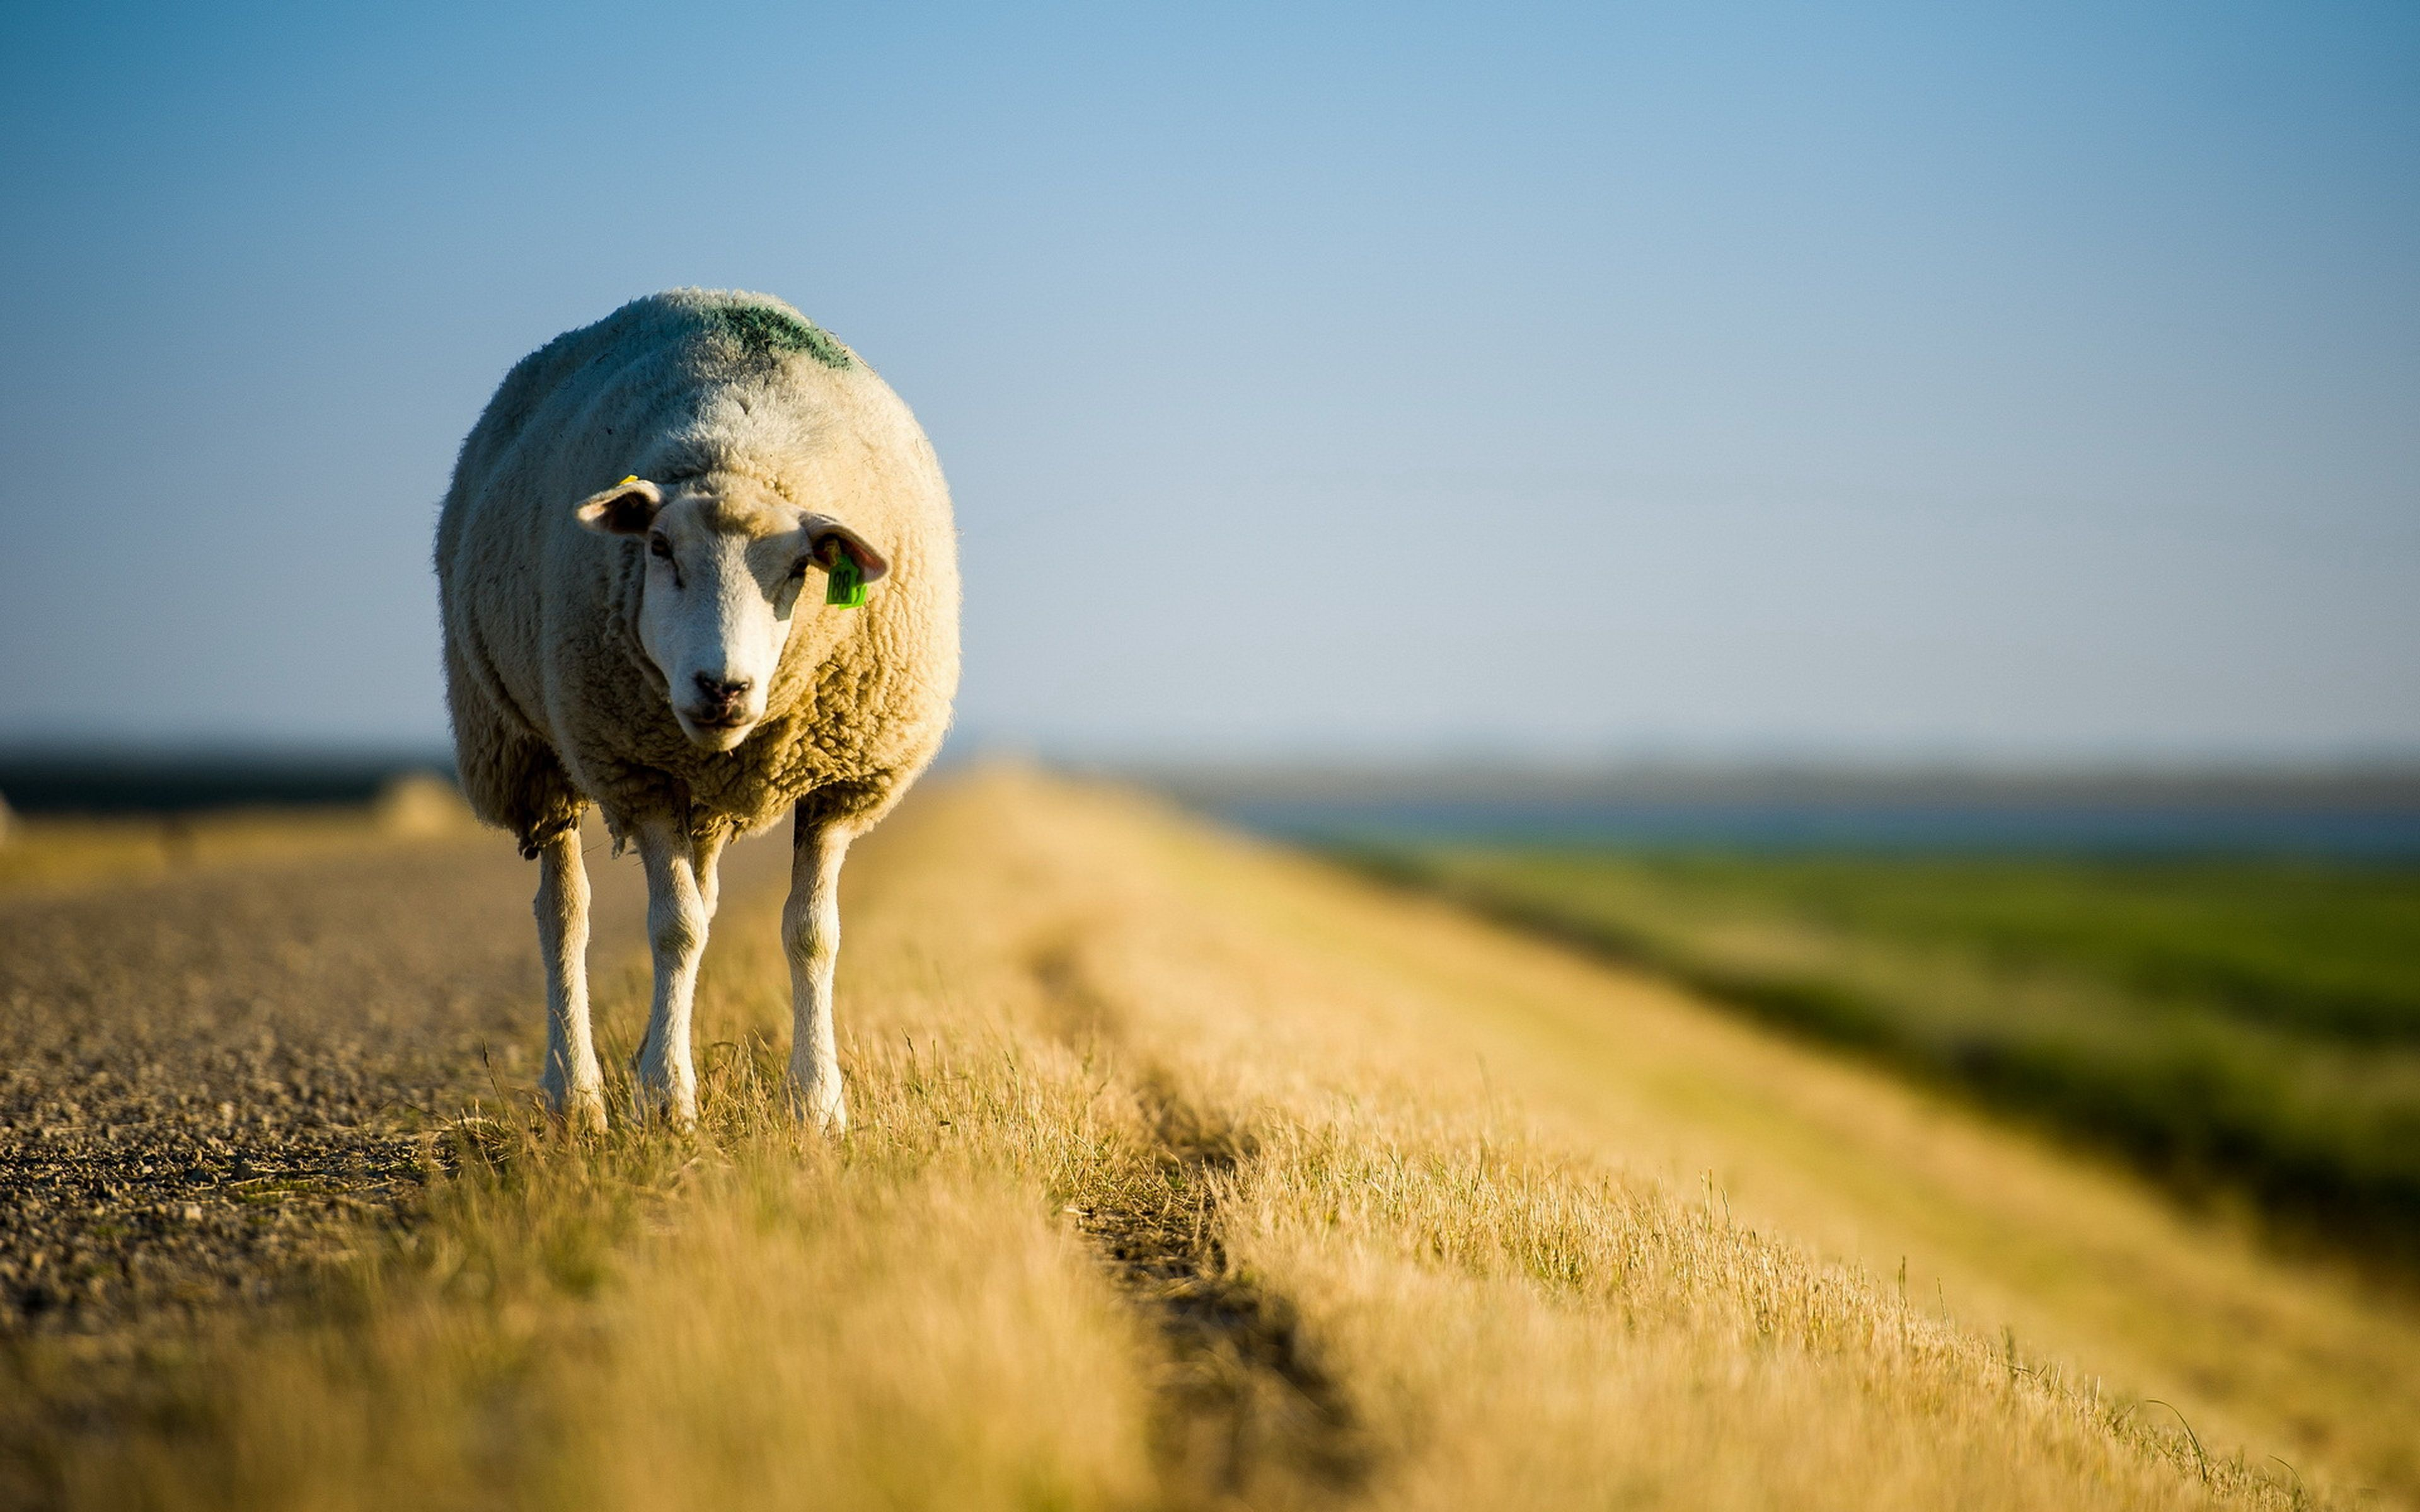 Sheep Wallpapers, Image, Photos, Pictures & Pics